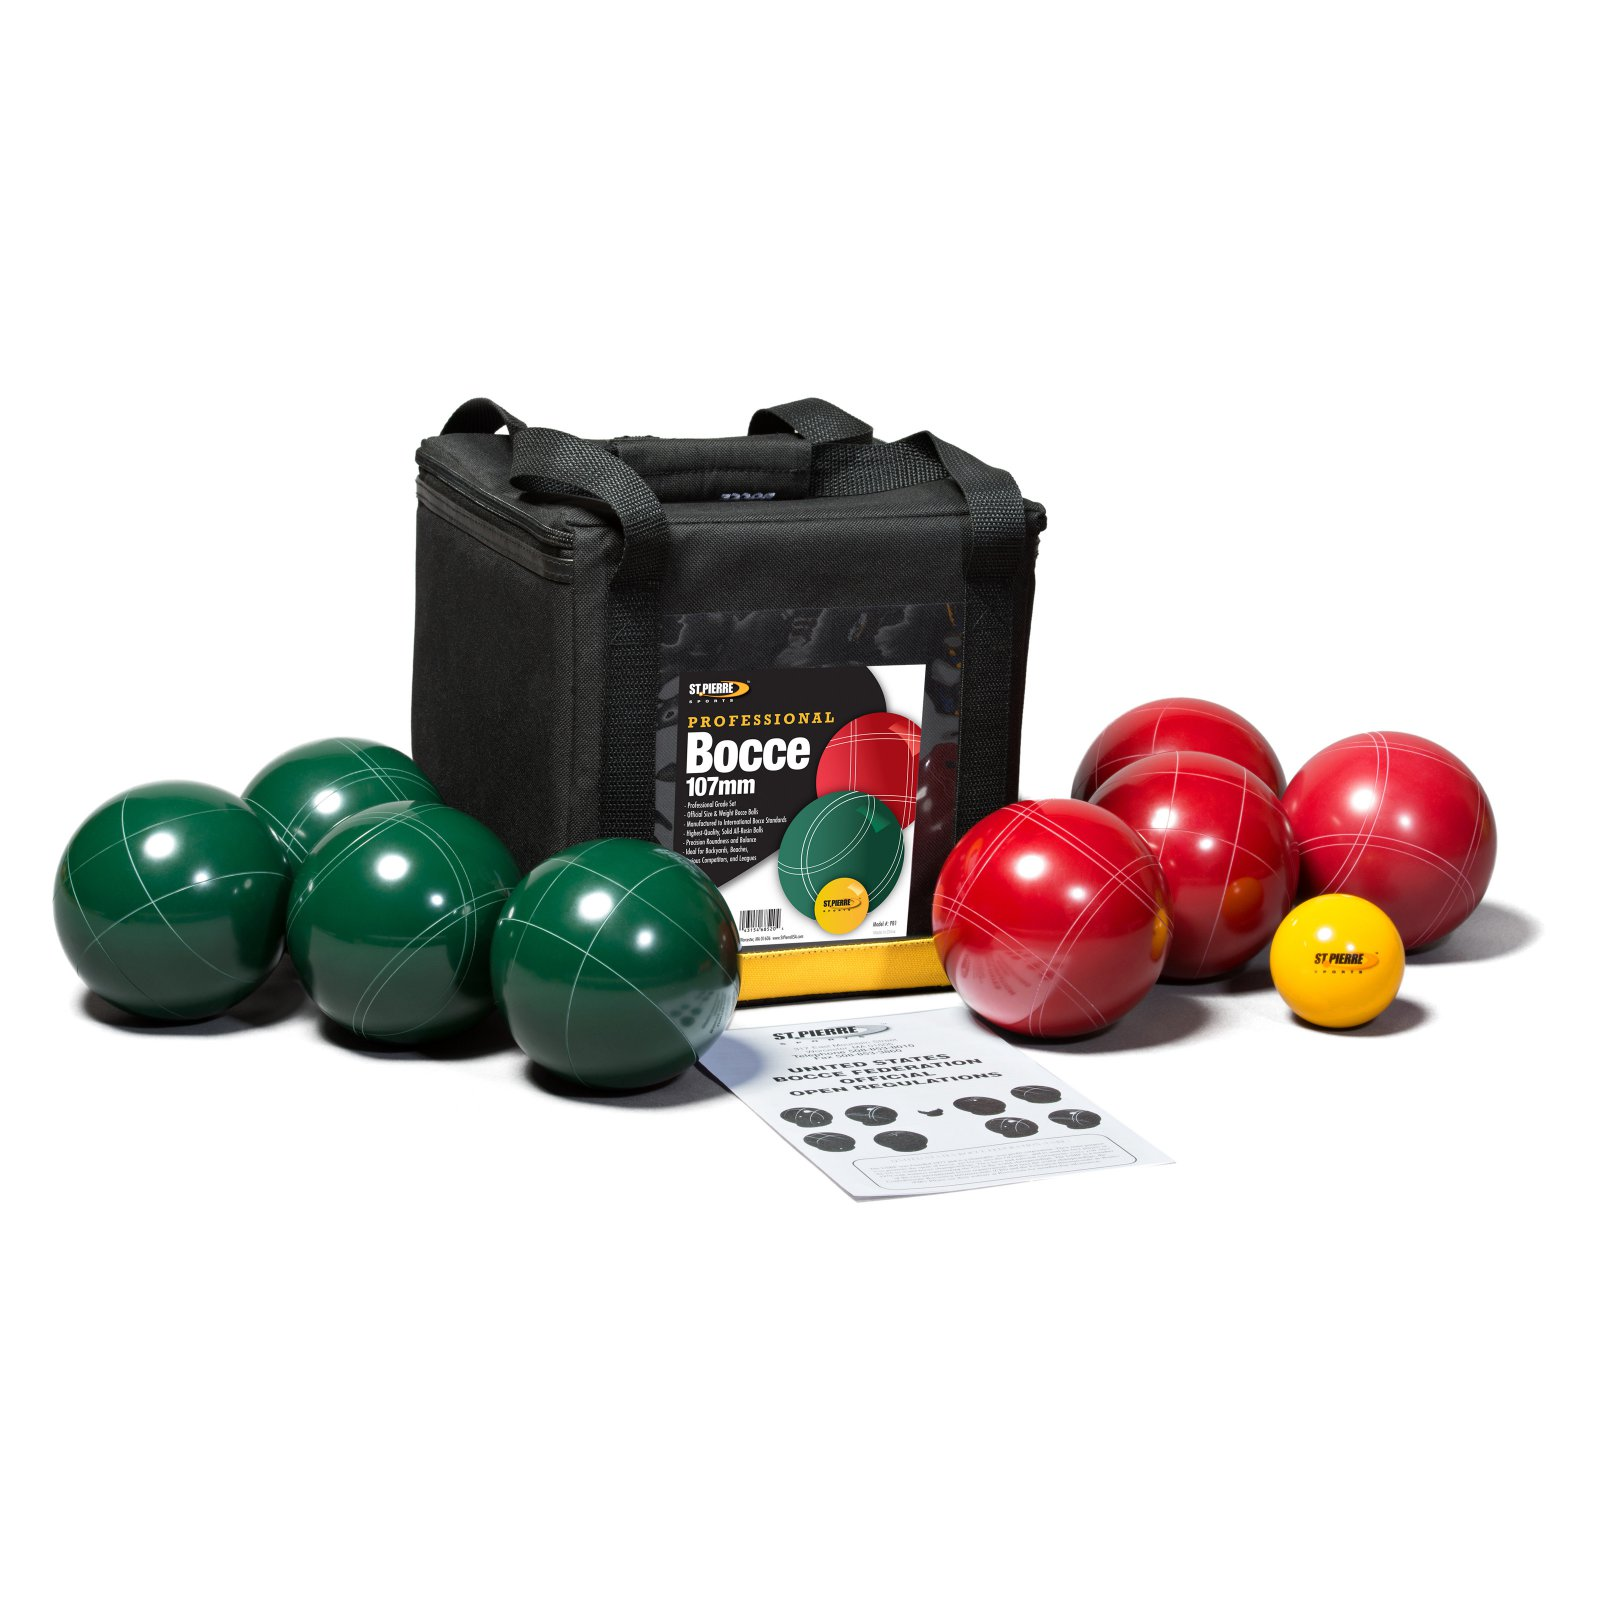 St. Pierre Professional Bocce Set with Nylon Bag